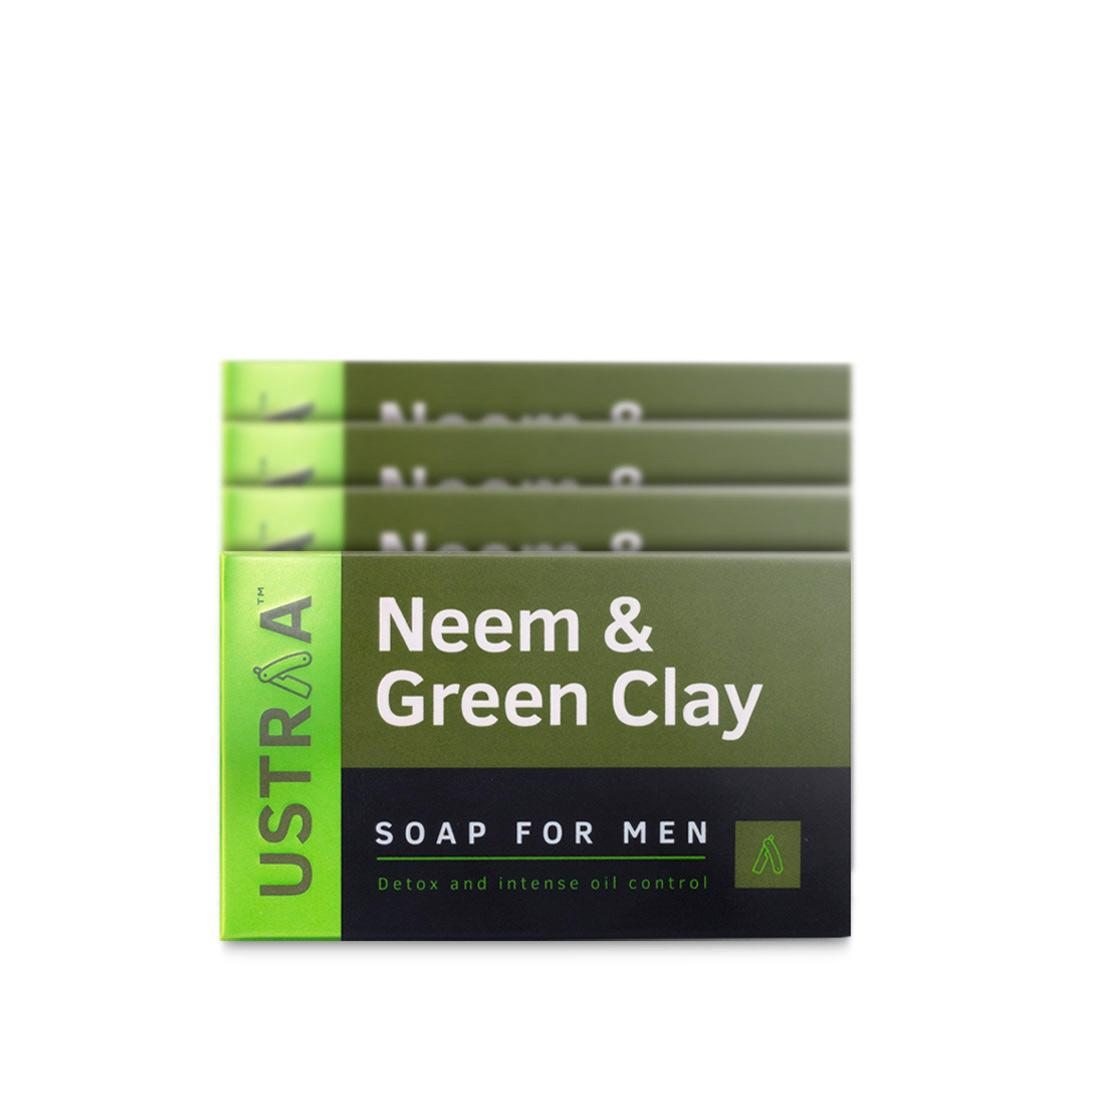 Ustraa Neem and Green Clay Soap For Men (Pack of 4, 100g): With Anticatrial and Antifungal Properties